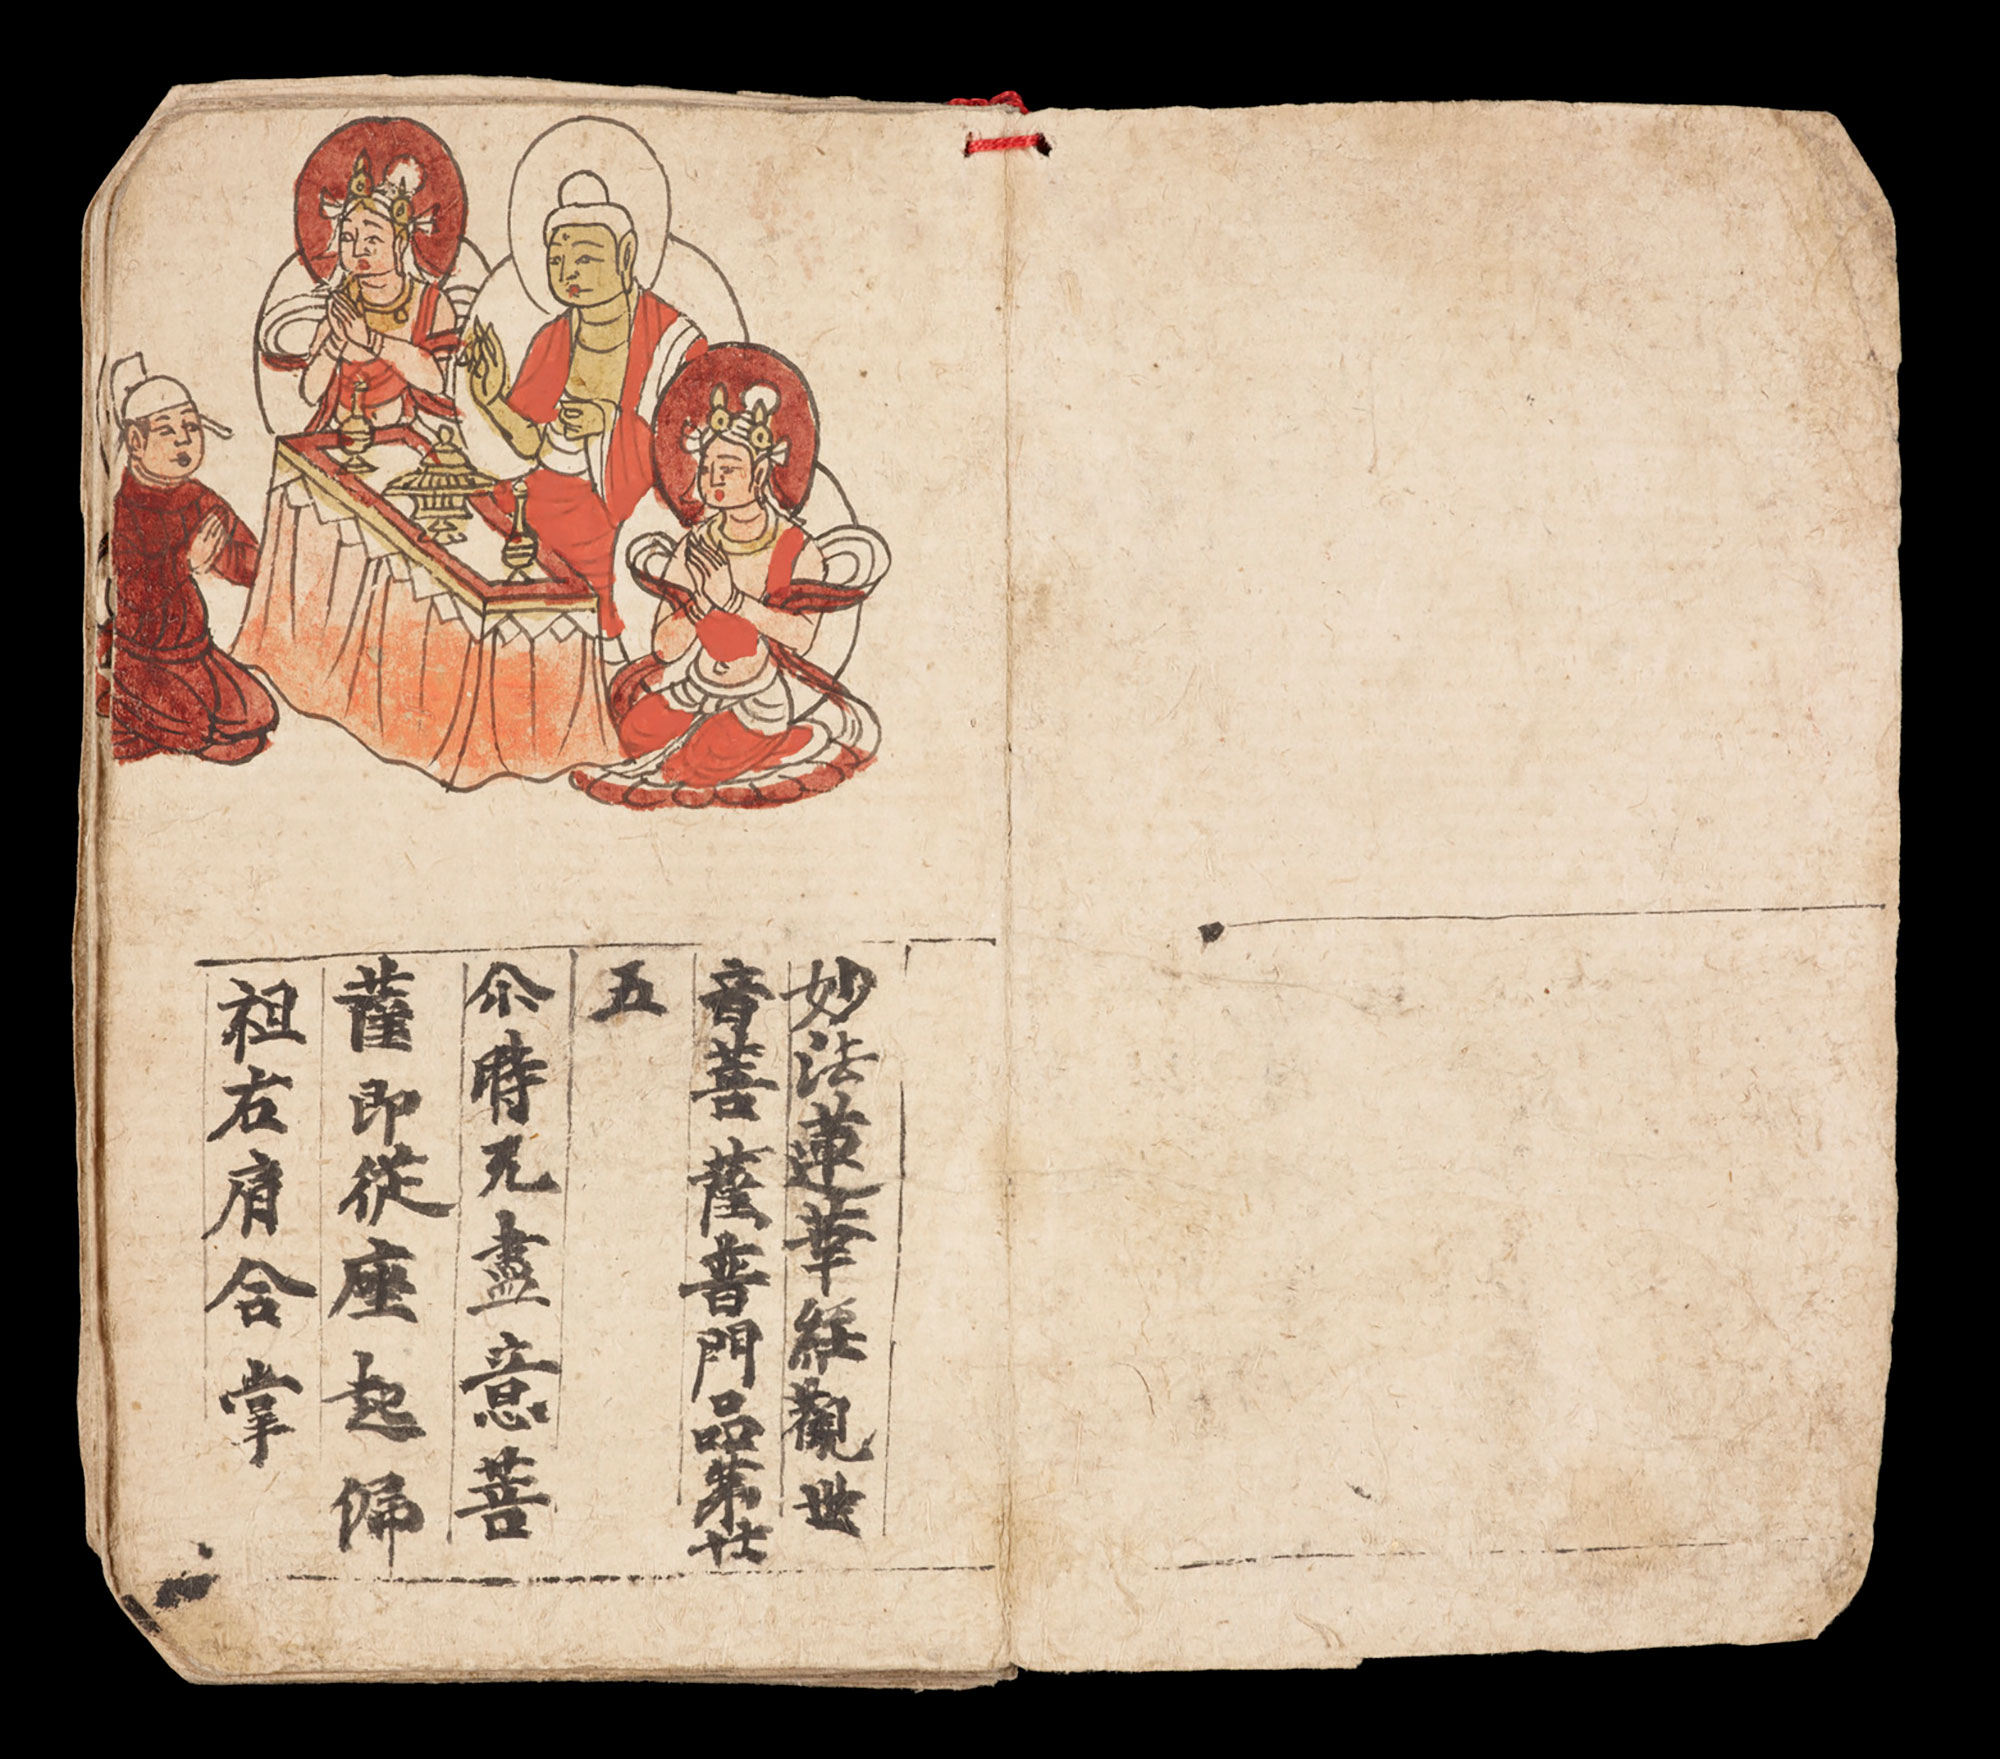 The diminutive size and format of the booklet probably made it portable and easy to consult. It is also illustrated with colourful scenes, laid in the upper part of each folio, above the columns of text. This visual narrative, by complementing the written content of the sūtra, would have been particularly useful to those who were illiterate or semiliterate.